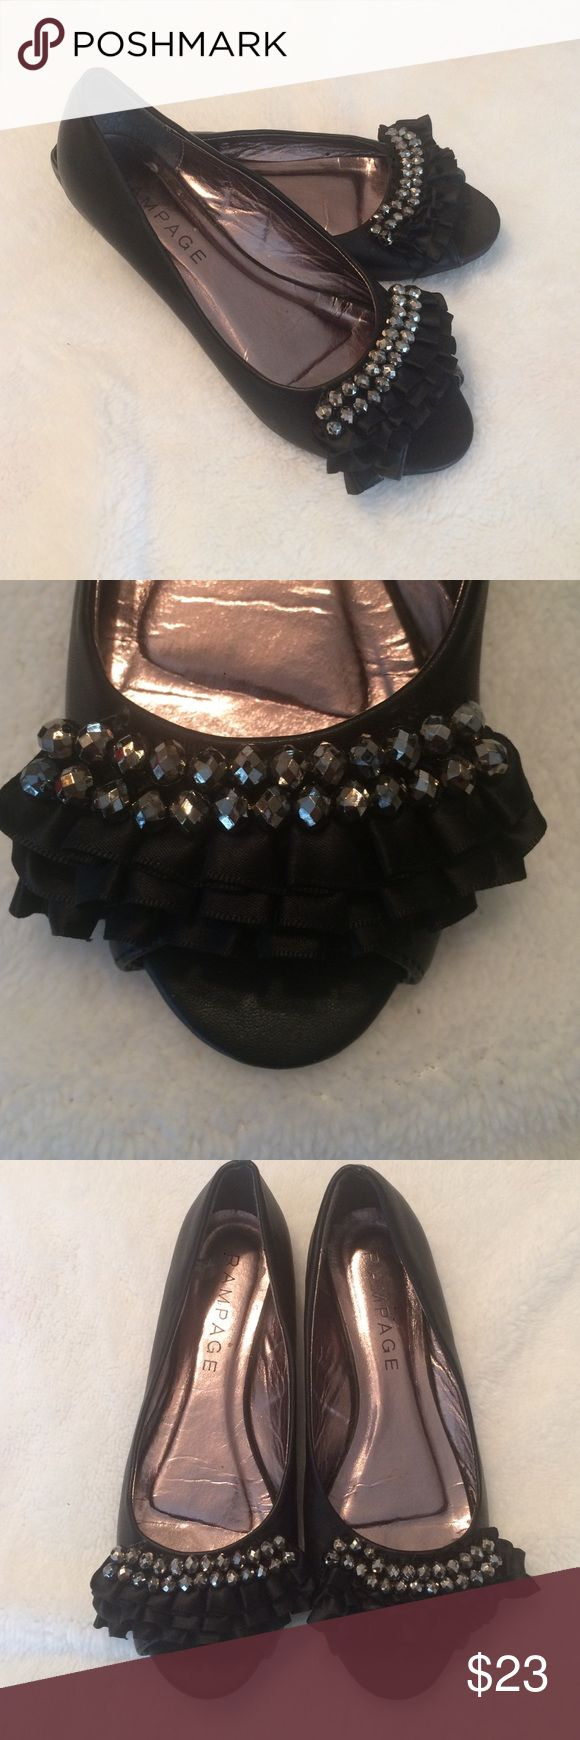 Ruffles Peep Toe Flats Ruffles and silver beads add all of the pizazz needed to make these comfortable flats perfect for the dance floor!   Only worn once so they are in great condition.  Size 7 Rampage Shoes Flats & Loafers